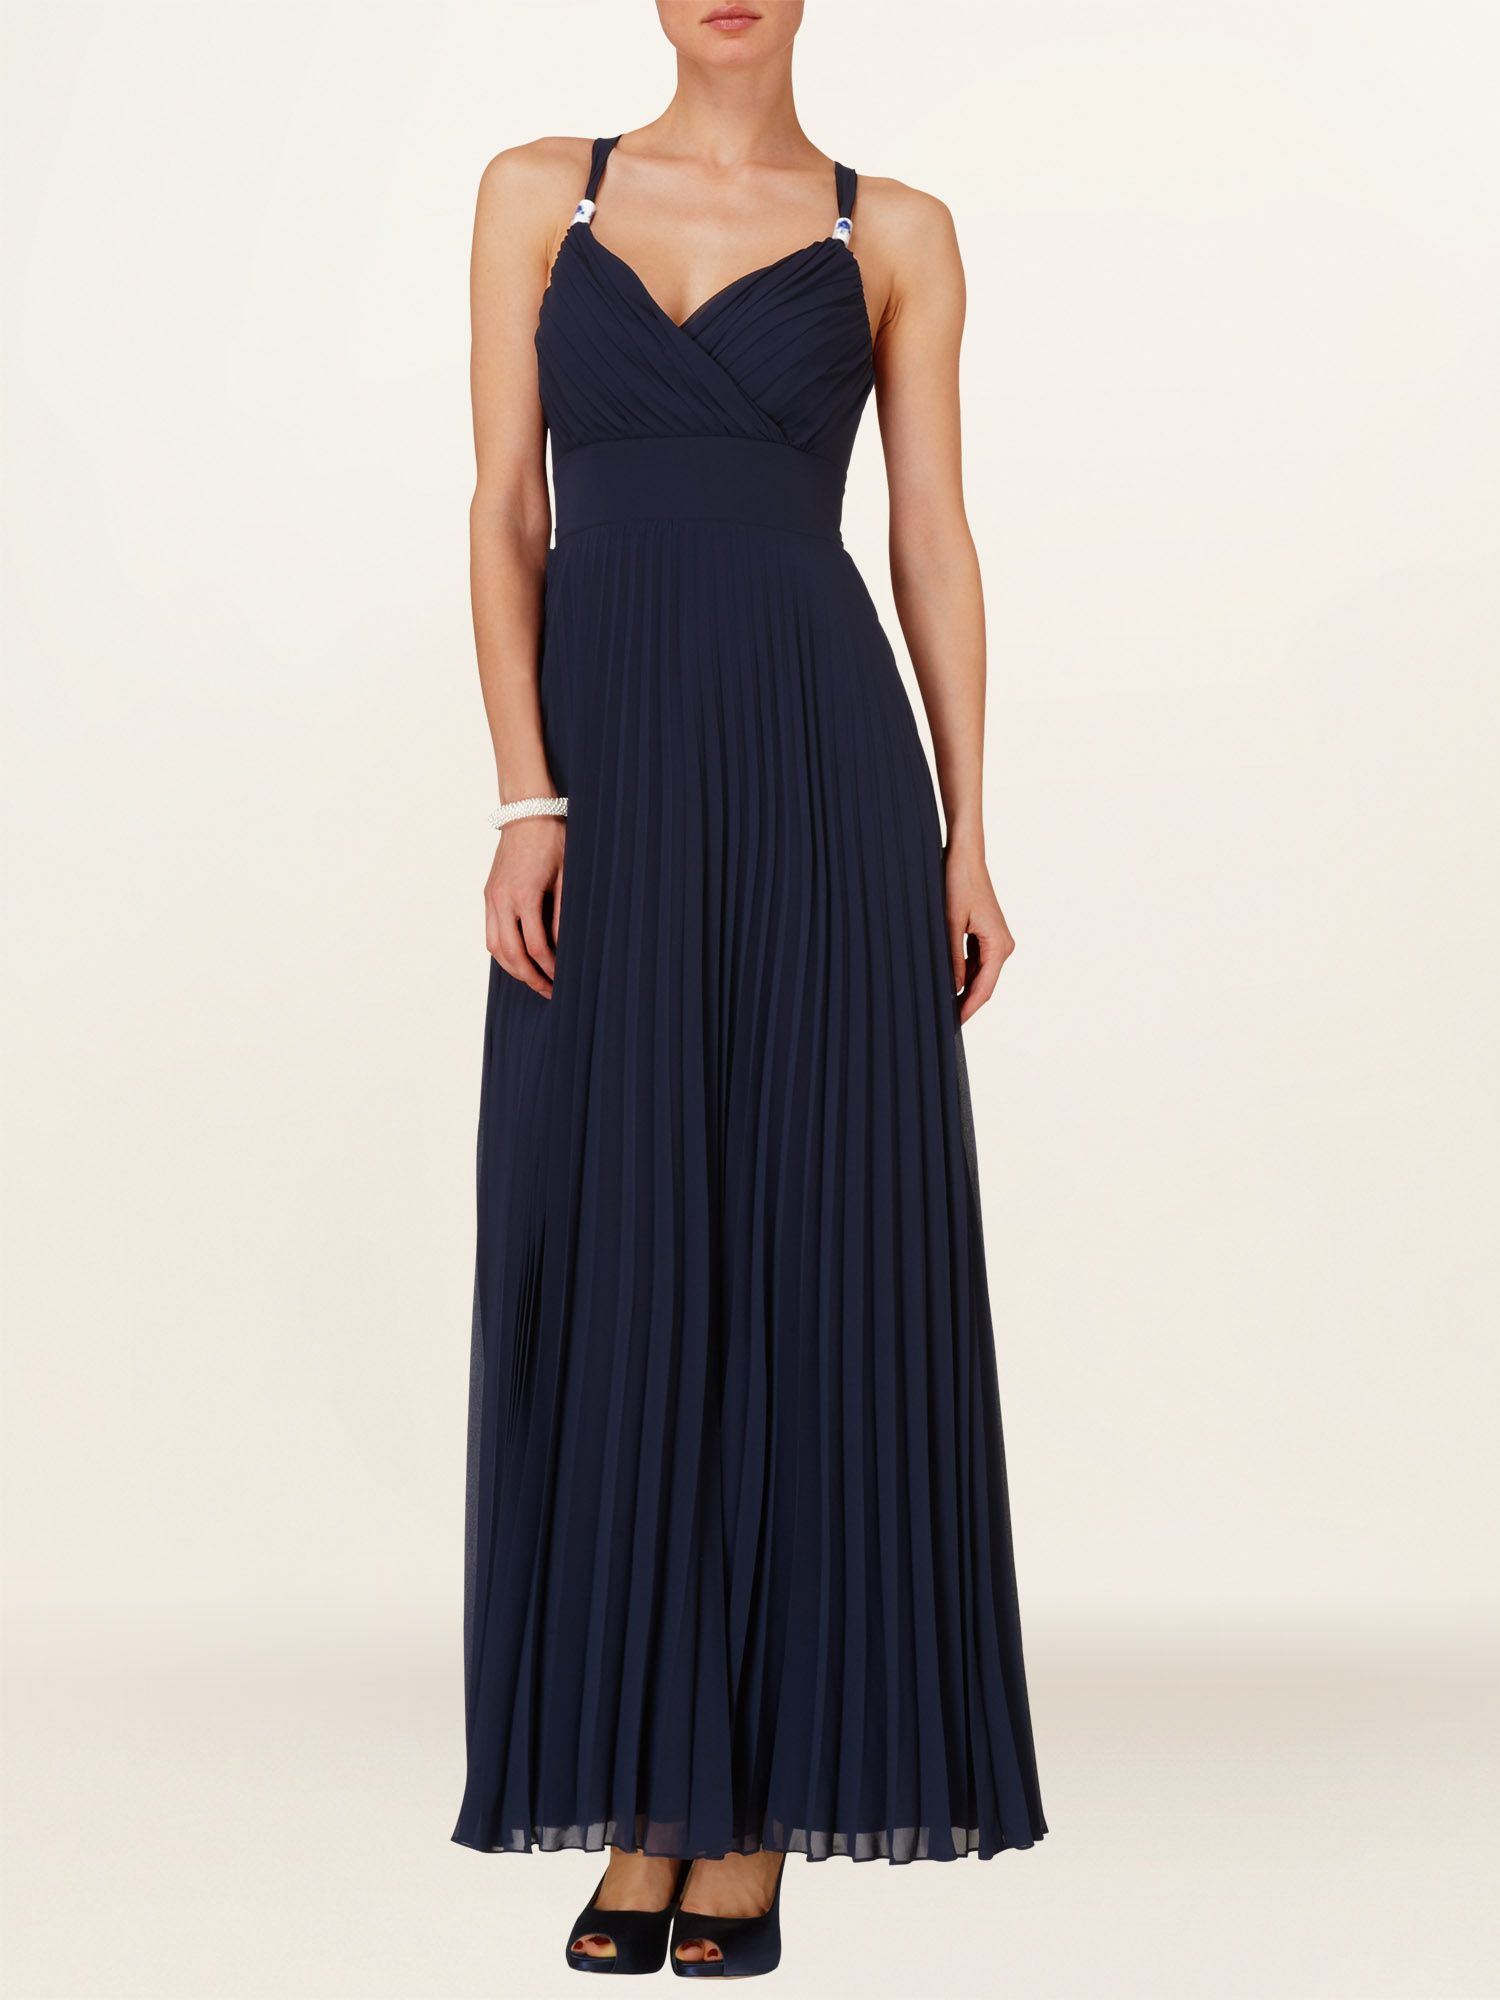 Annalise pleated maxi dress